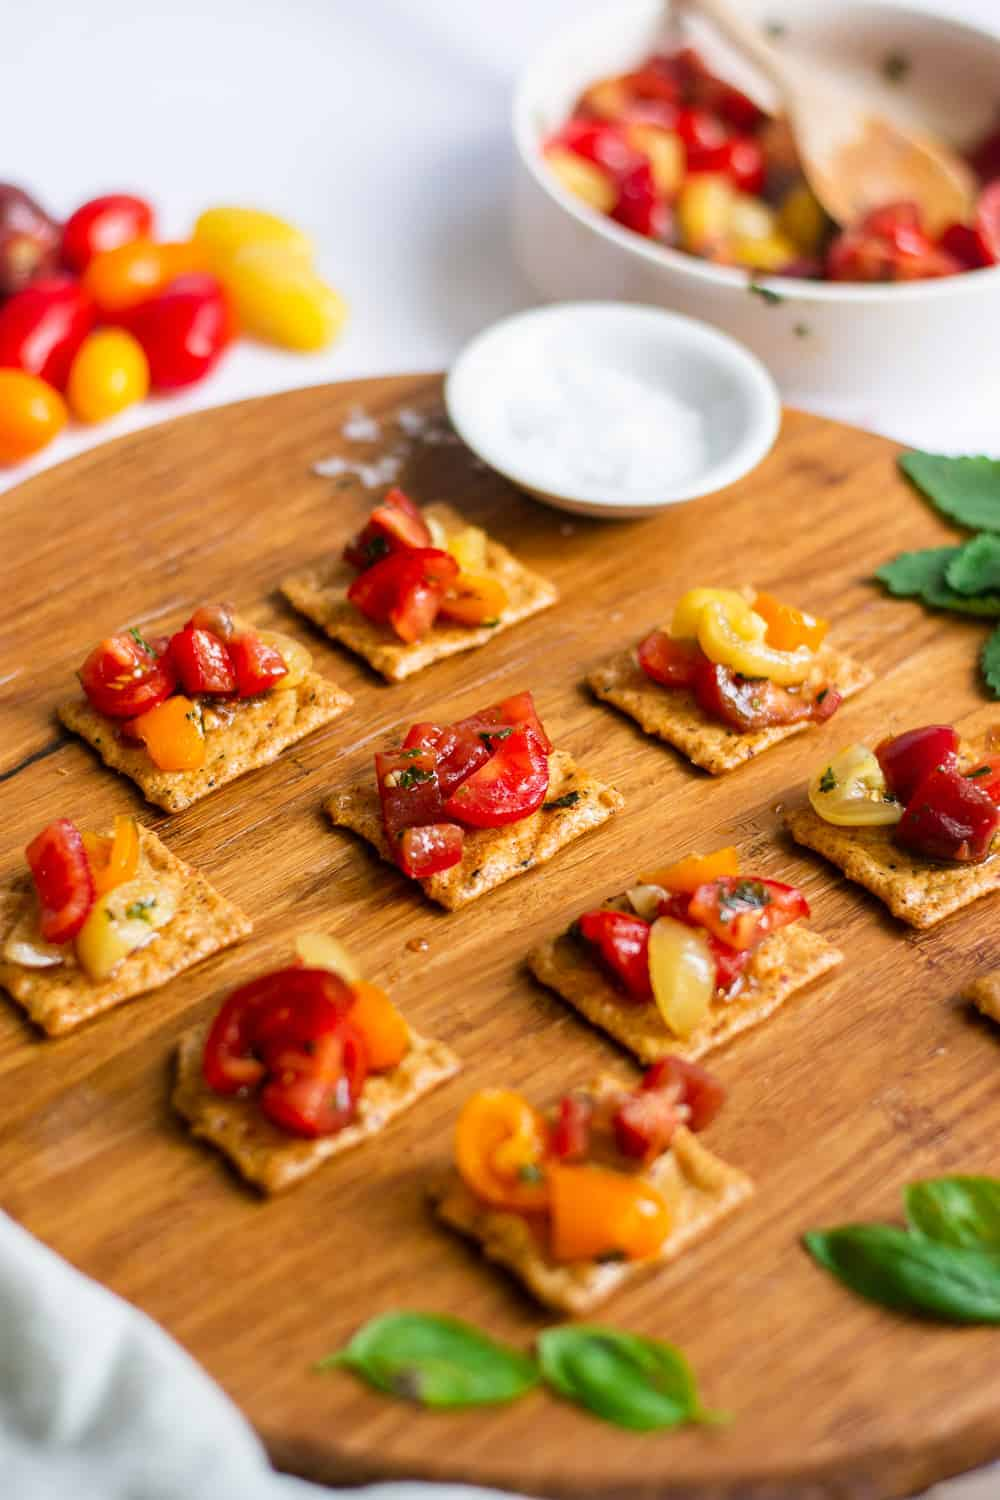 5-Minute Vegan Gluten Free Bruschetta without Bread | Vegan Bruschetta, Gluten Free Bruschetta, Bruschetta Without Bread, 5 Minute Bruschetta, Bruschetta Recipe #veganbruschetta #glutenfreebruschetta #easybruschetta #thebutterhalf || The Butter Half